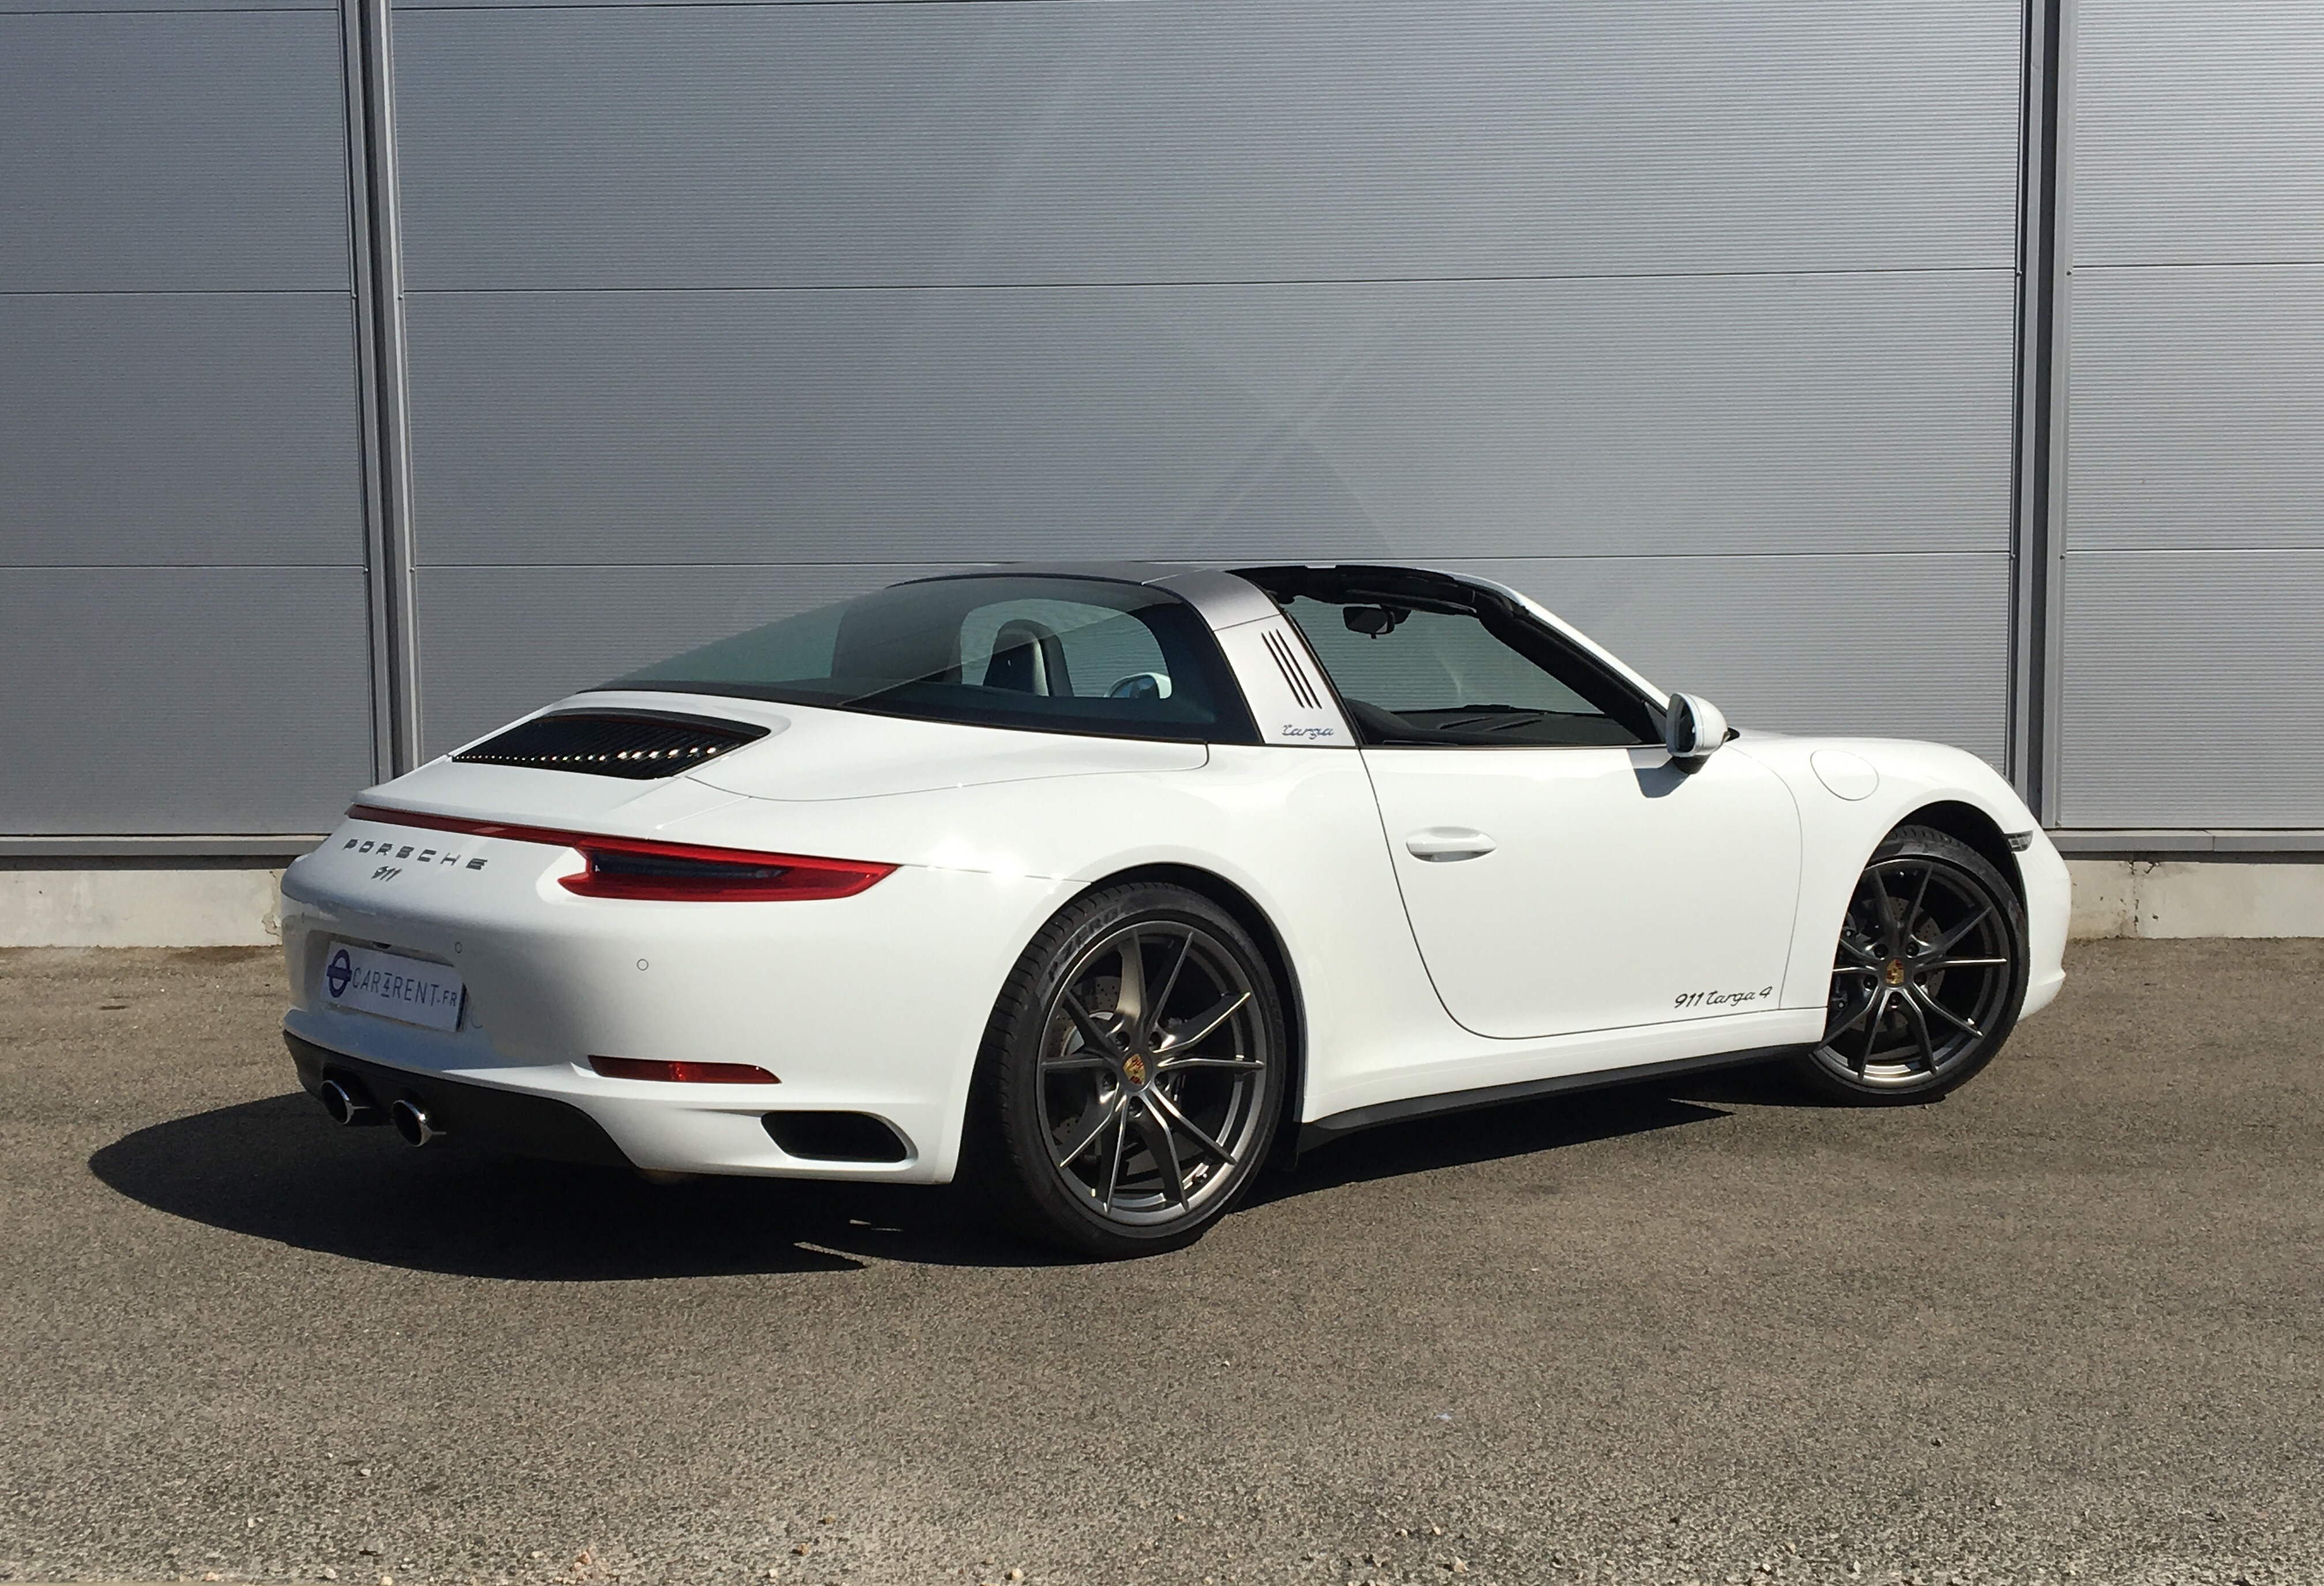 hire posrche 911 targa car4rent Saint-tropez